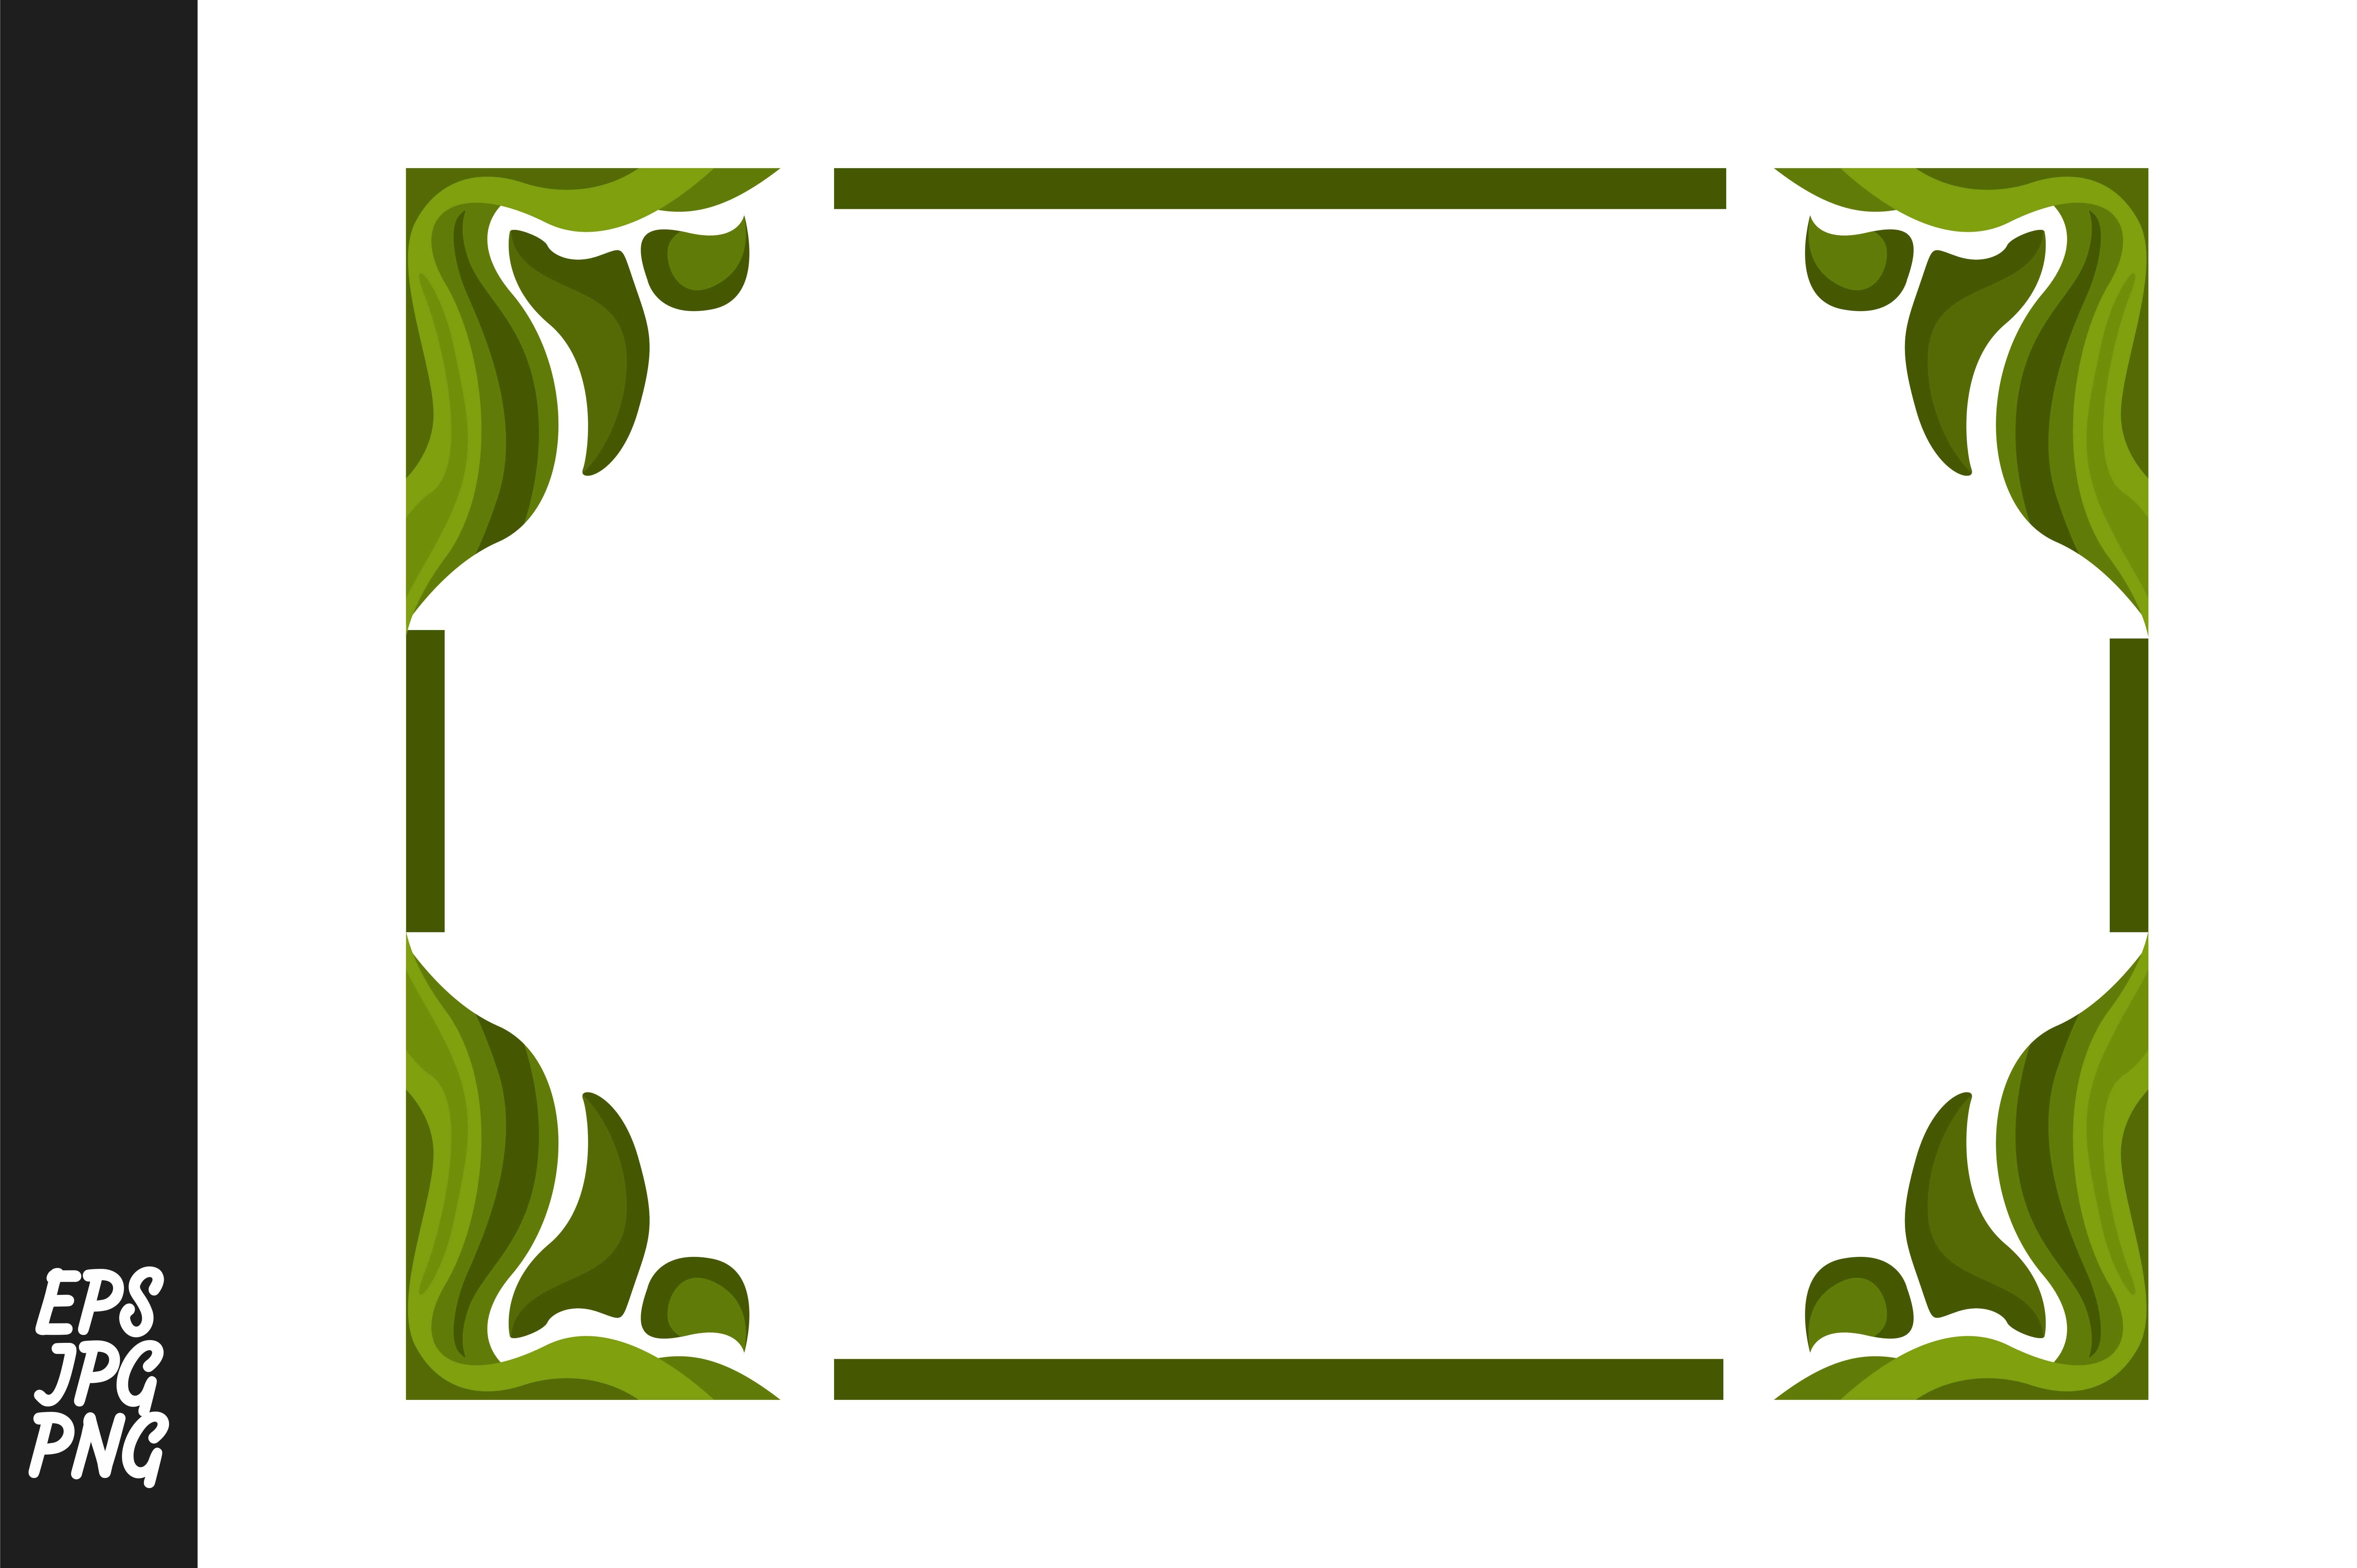 Download Free Green Ornament Border Graphic By Arief Sapta Adjie Creative for Cricut Explore, Silhouette and other cutting machines.